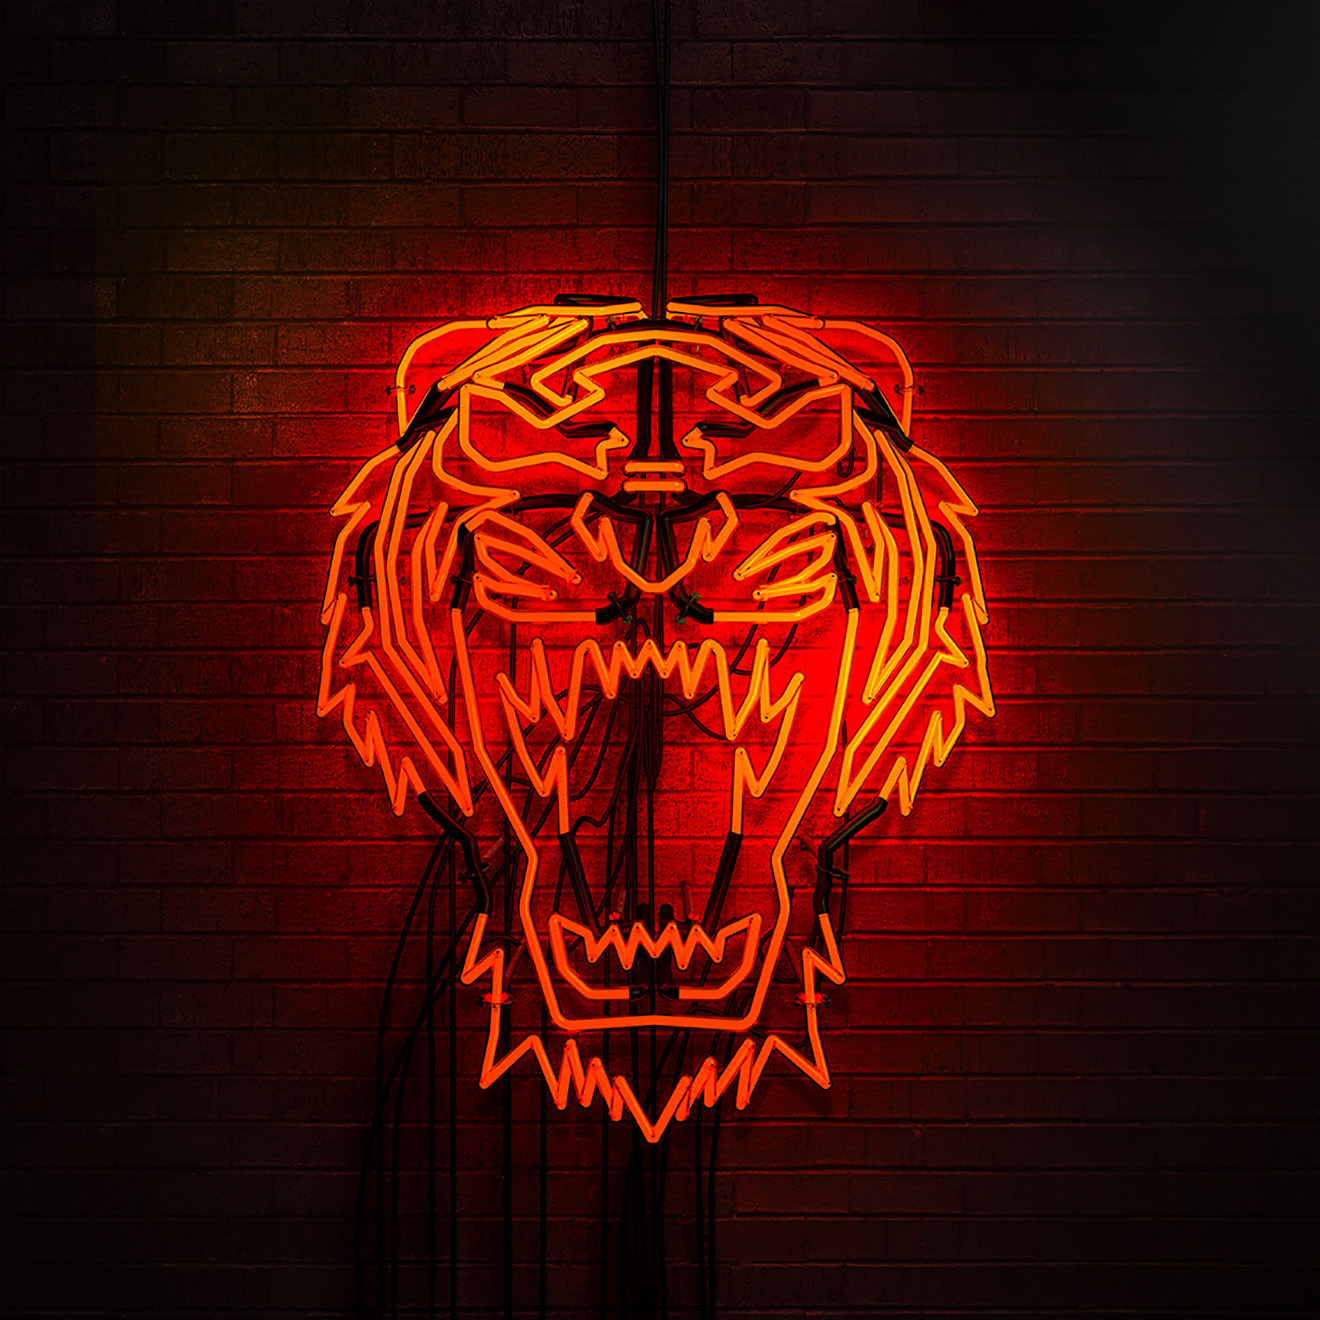 cgi tiger neon sign design asics